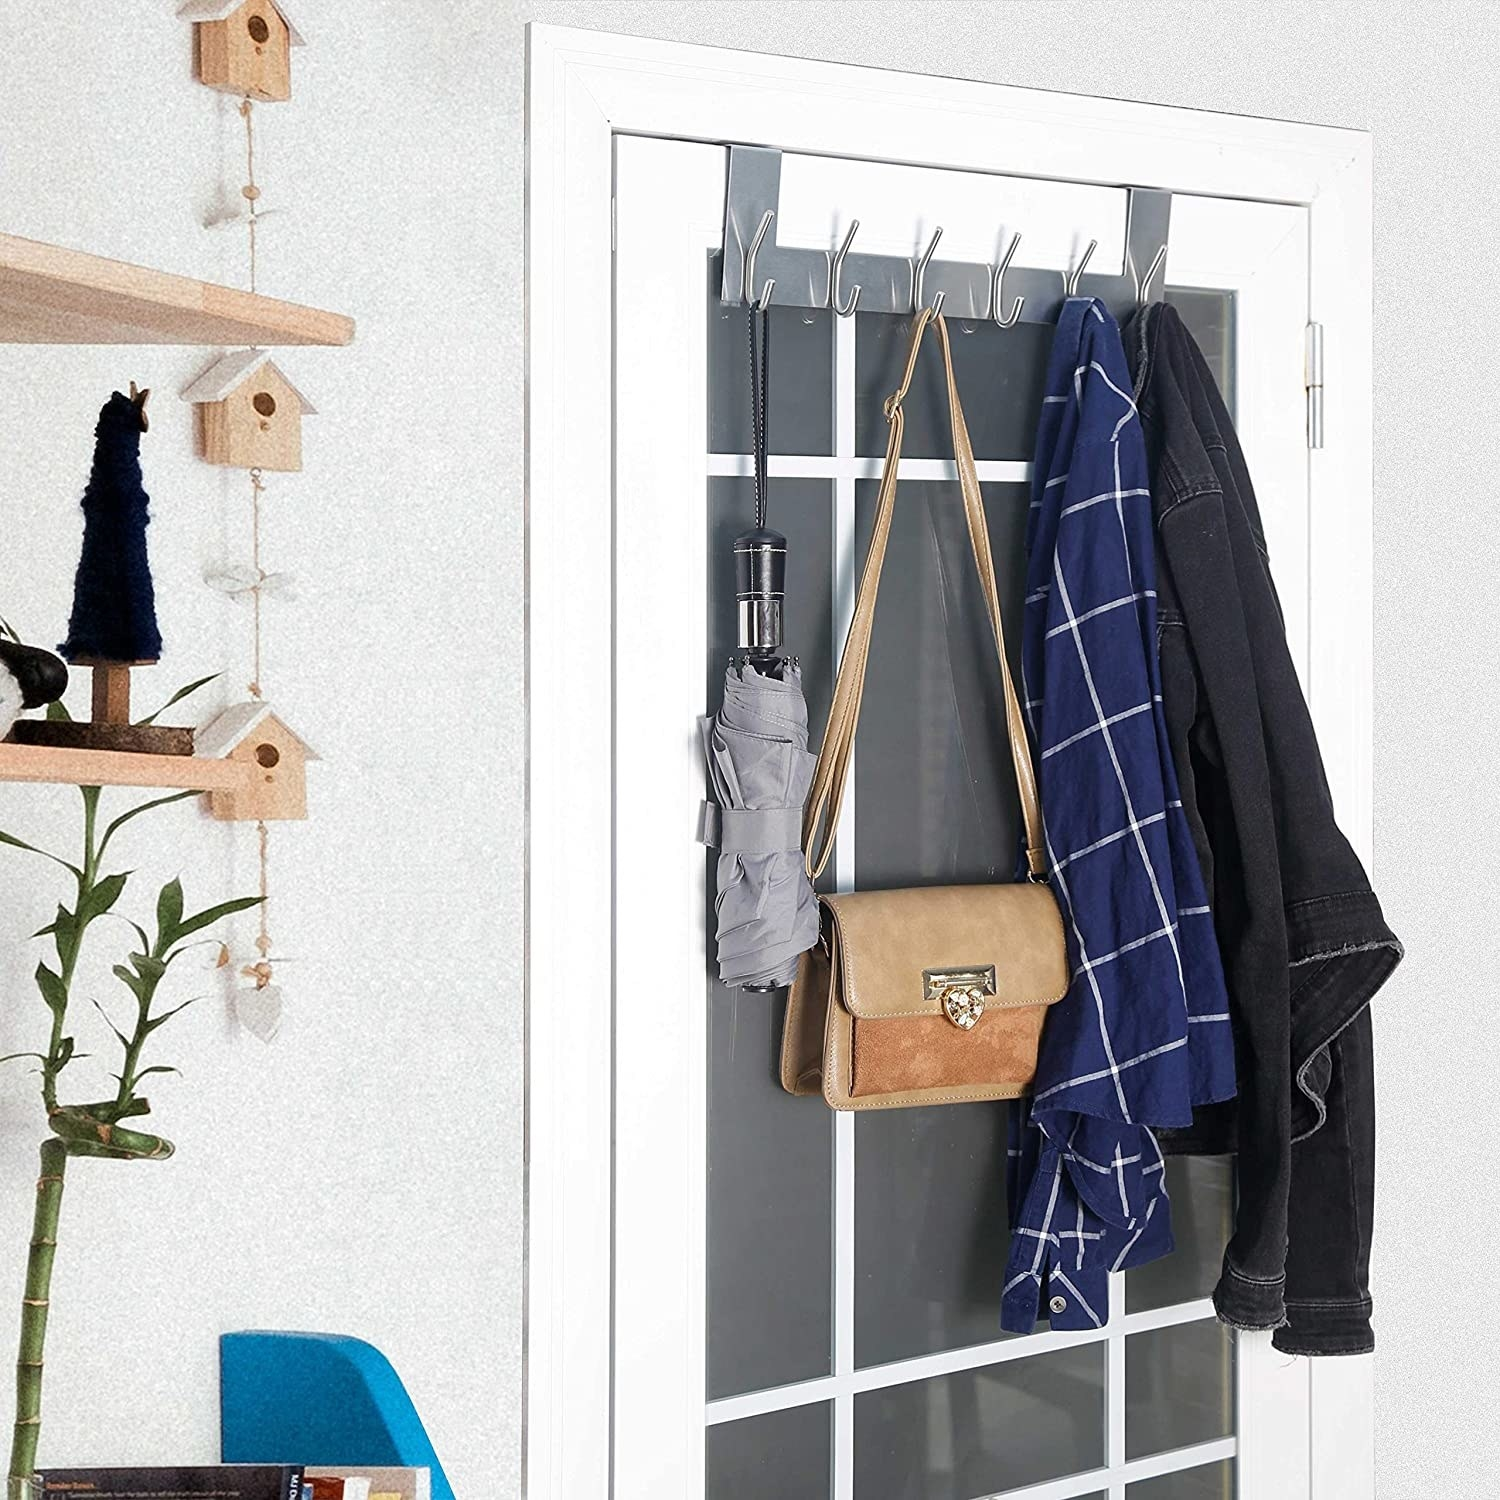 An over the door hook holding an umbrella, a purse, and two jackets